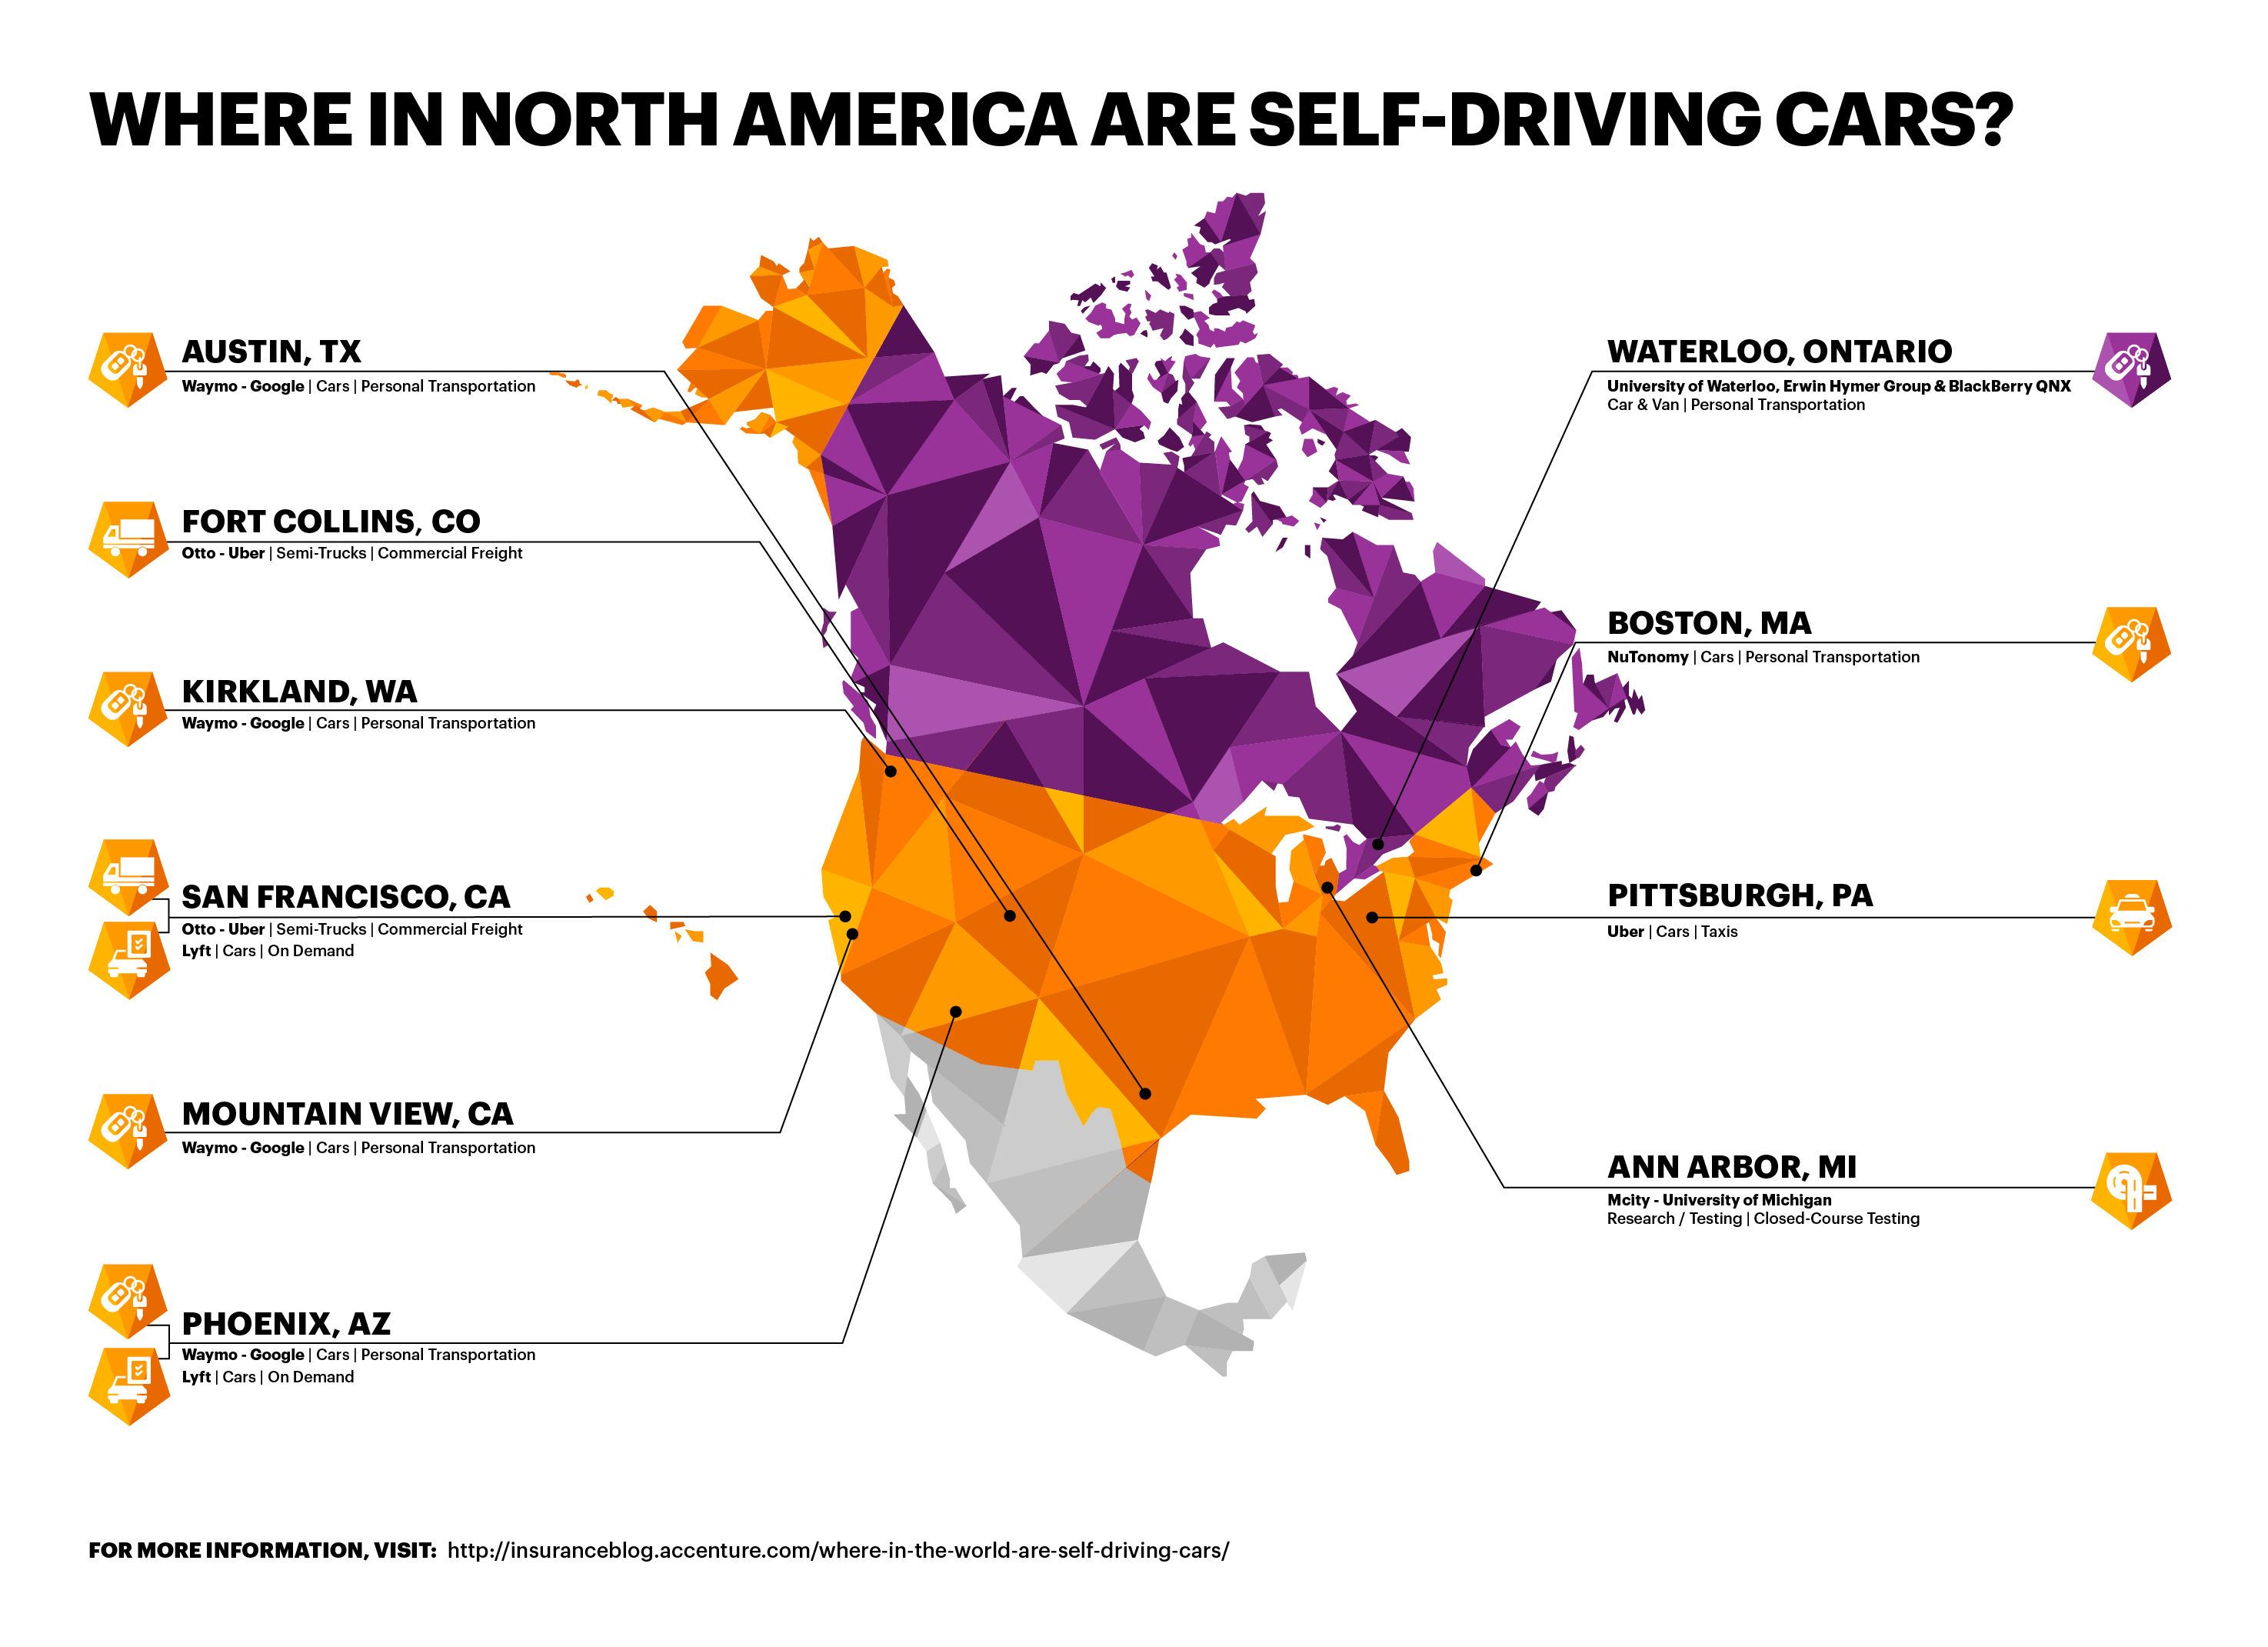 Where in North America are self-driving cars?